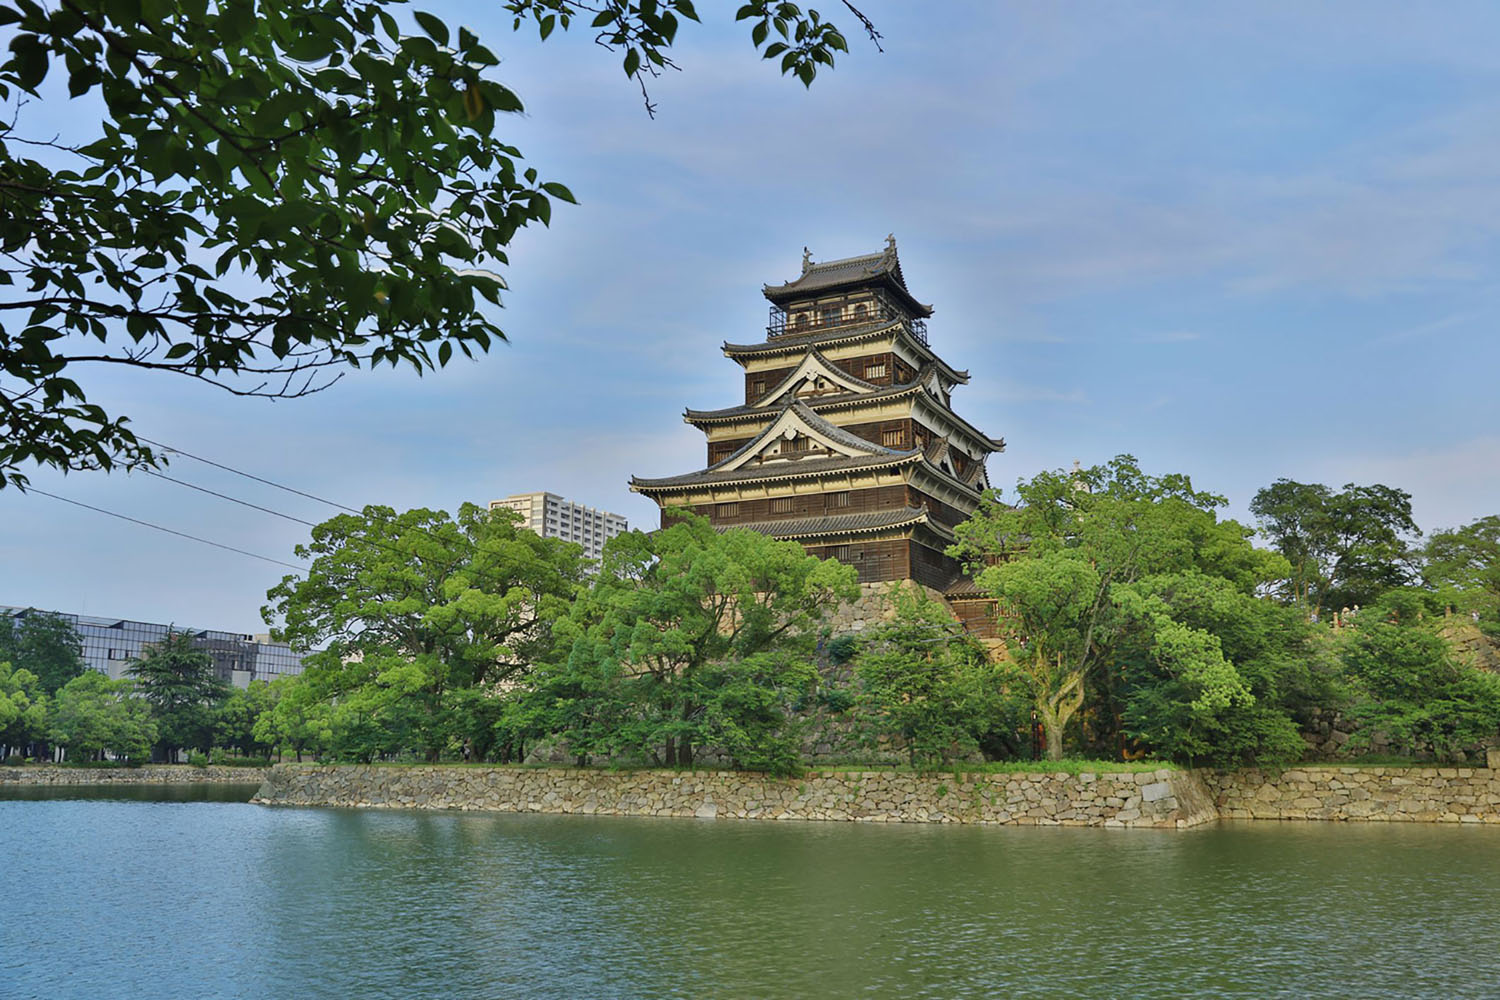 Exterior of Hiroshima Castle in Hiroshima, Japan